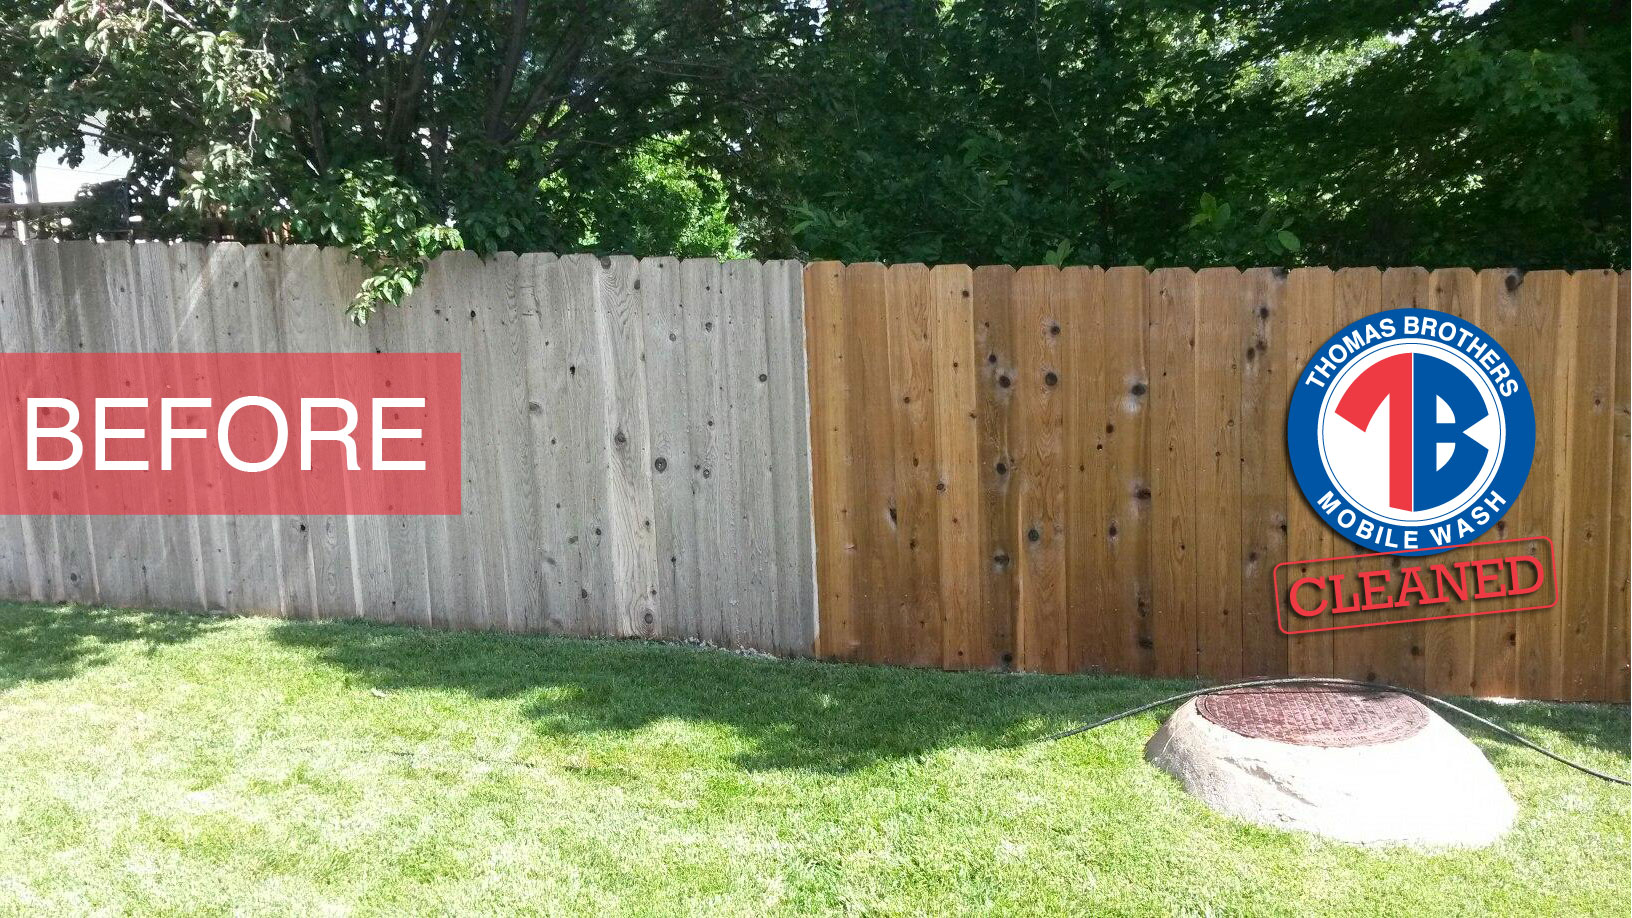 powerwashed-fence-before-after-thomasbrothers.jpg